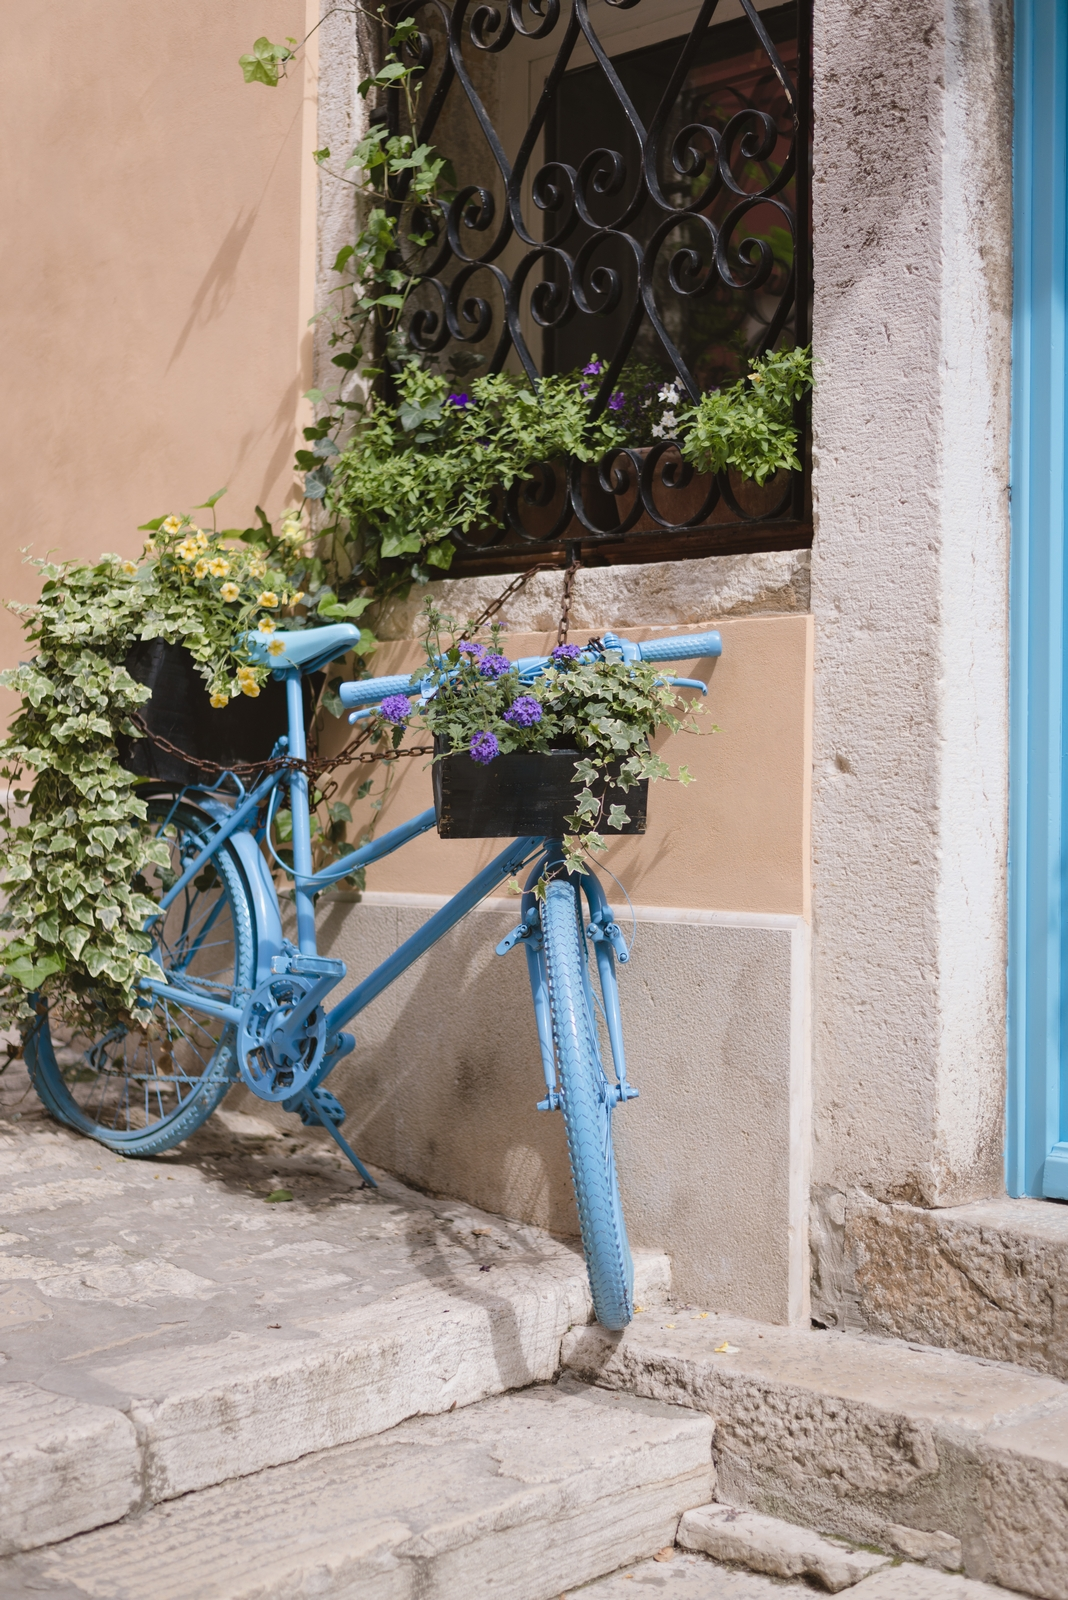 Blue bicycle in the center of the Old Town Rovinj, Croatia - from travel blog http://Epepa.eu